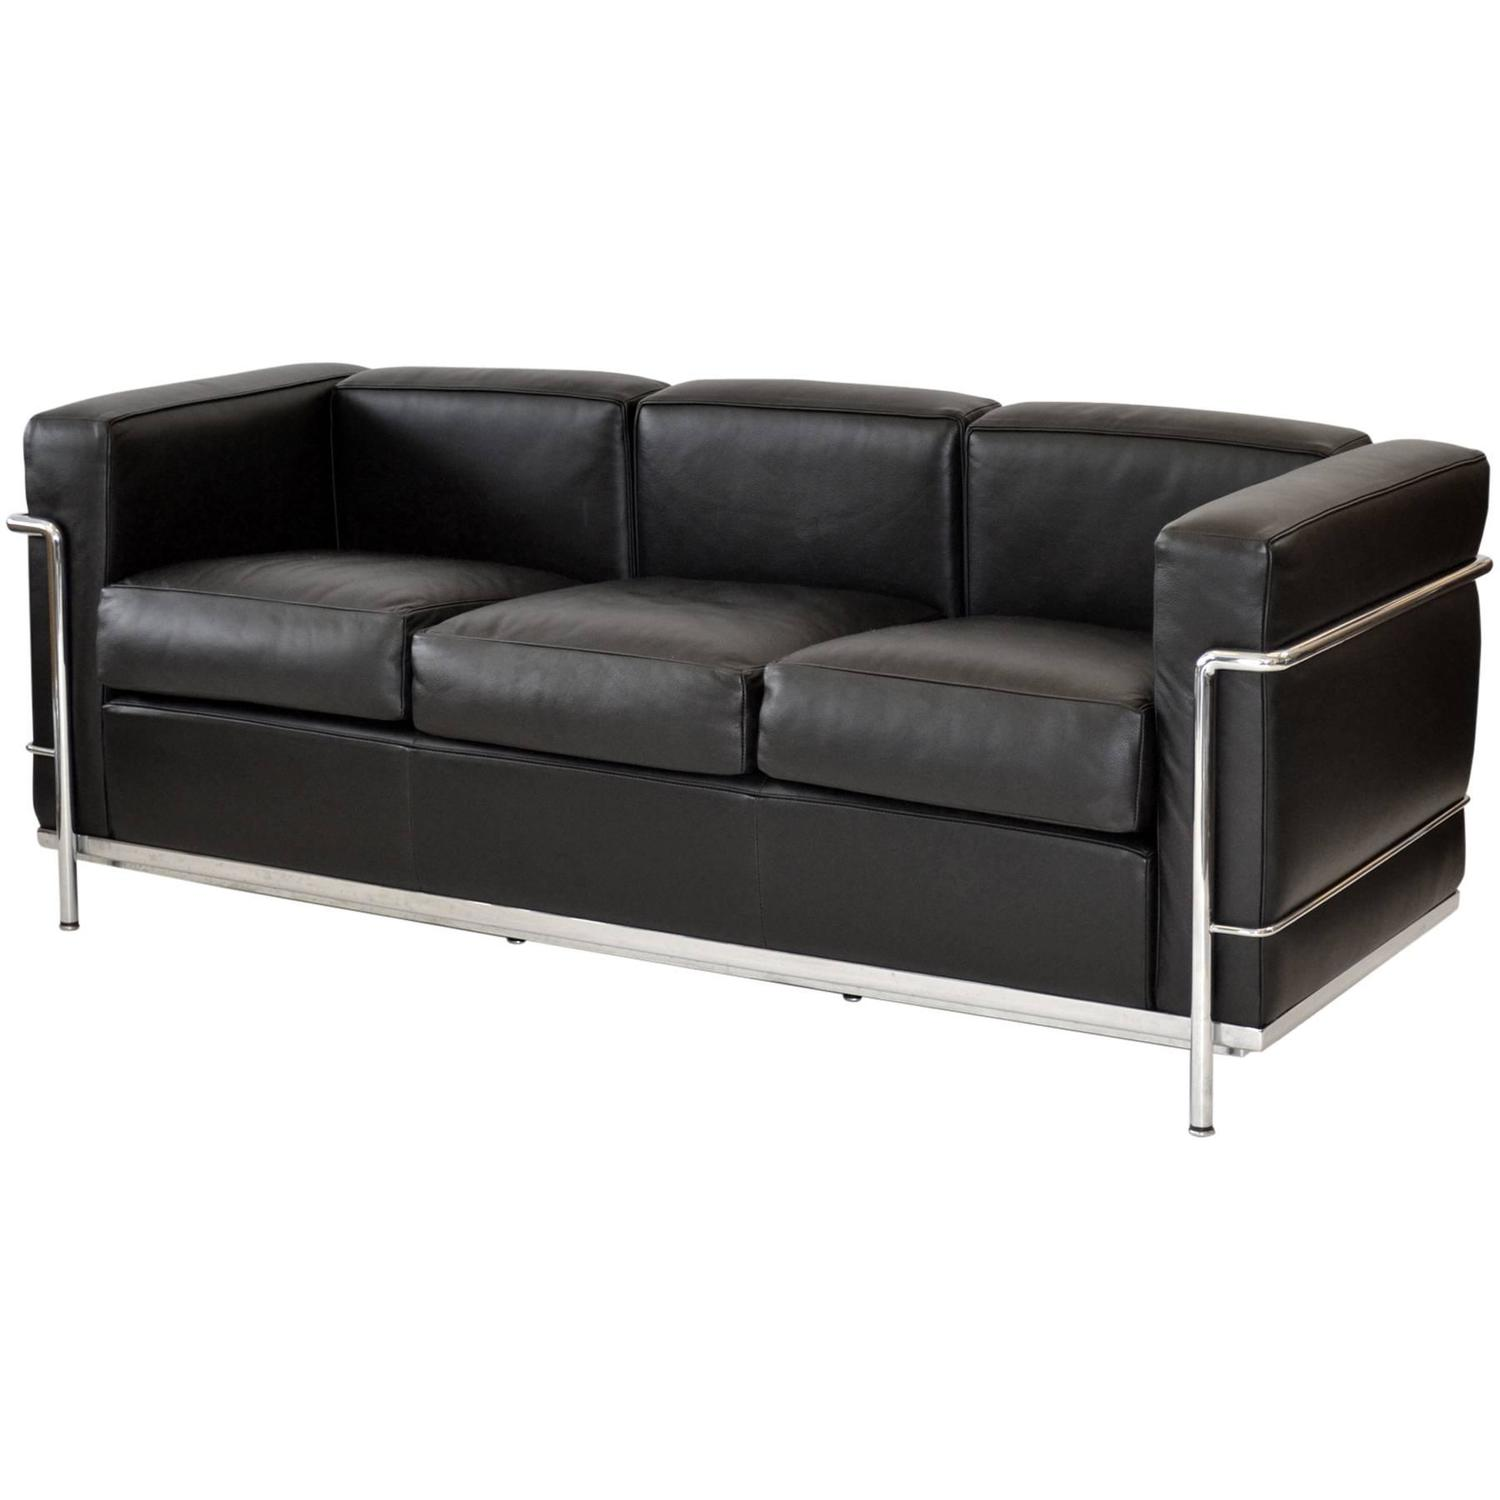 Lc2 Three Seat Leather Sofa By Le Corbusier For Cassina At 1stdibs